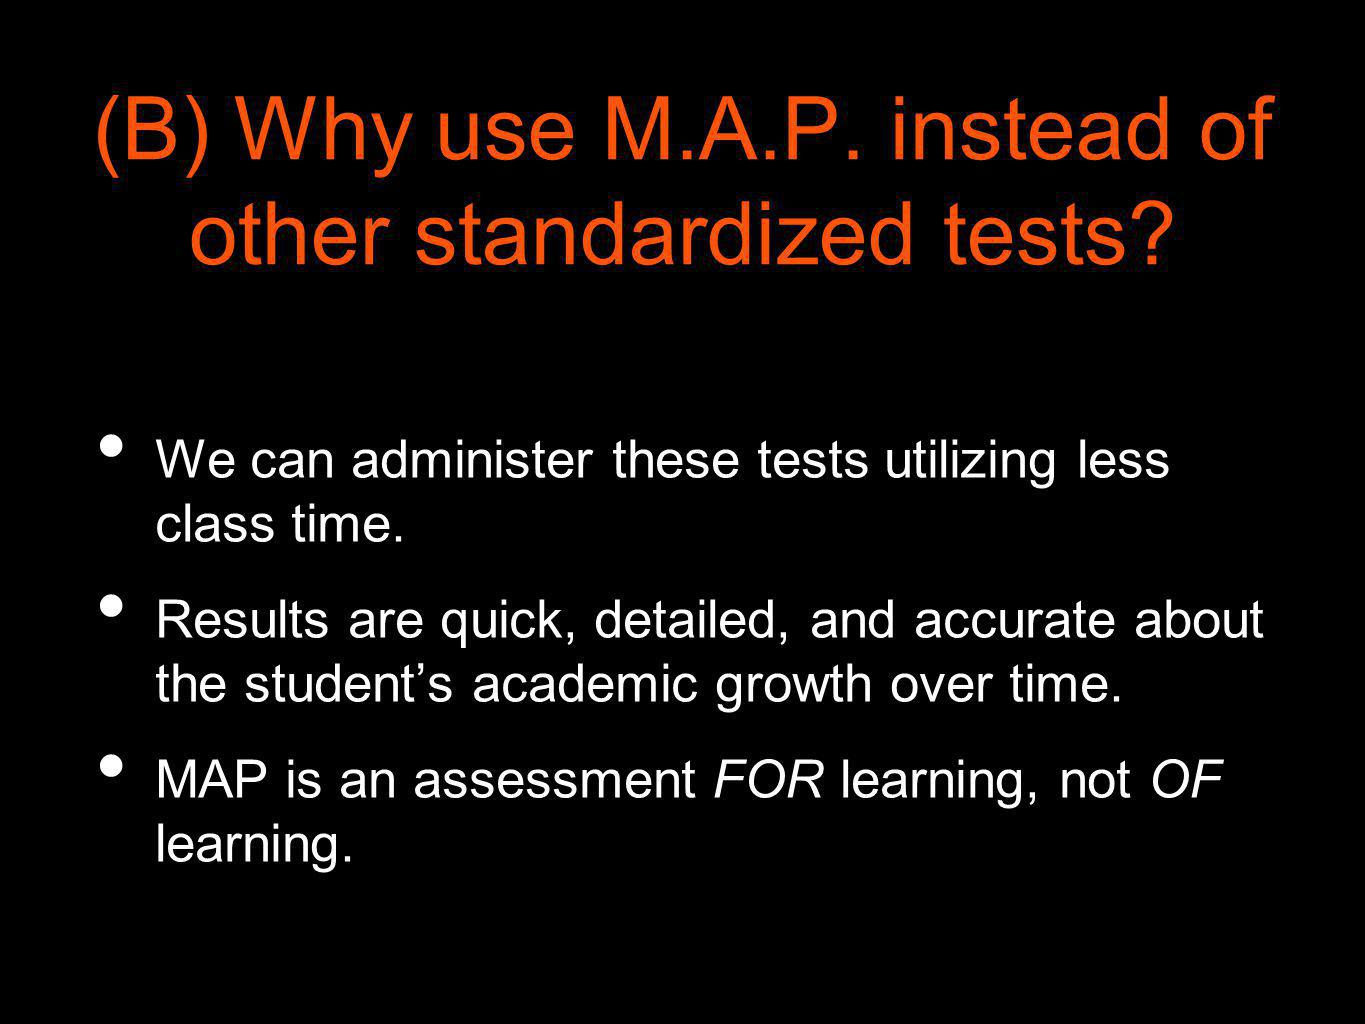 (B) Why use M.A.P. instead of other standardized tests? We can administer these tests utilizing less class time. Results are quick, detailed, and accu